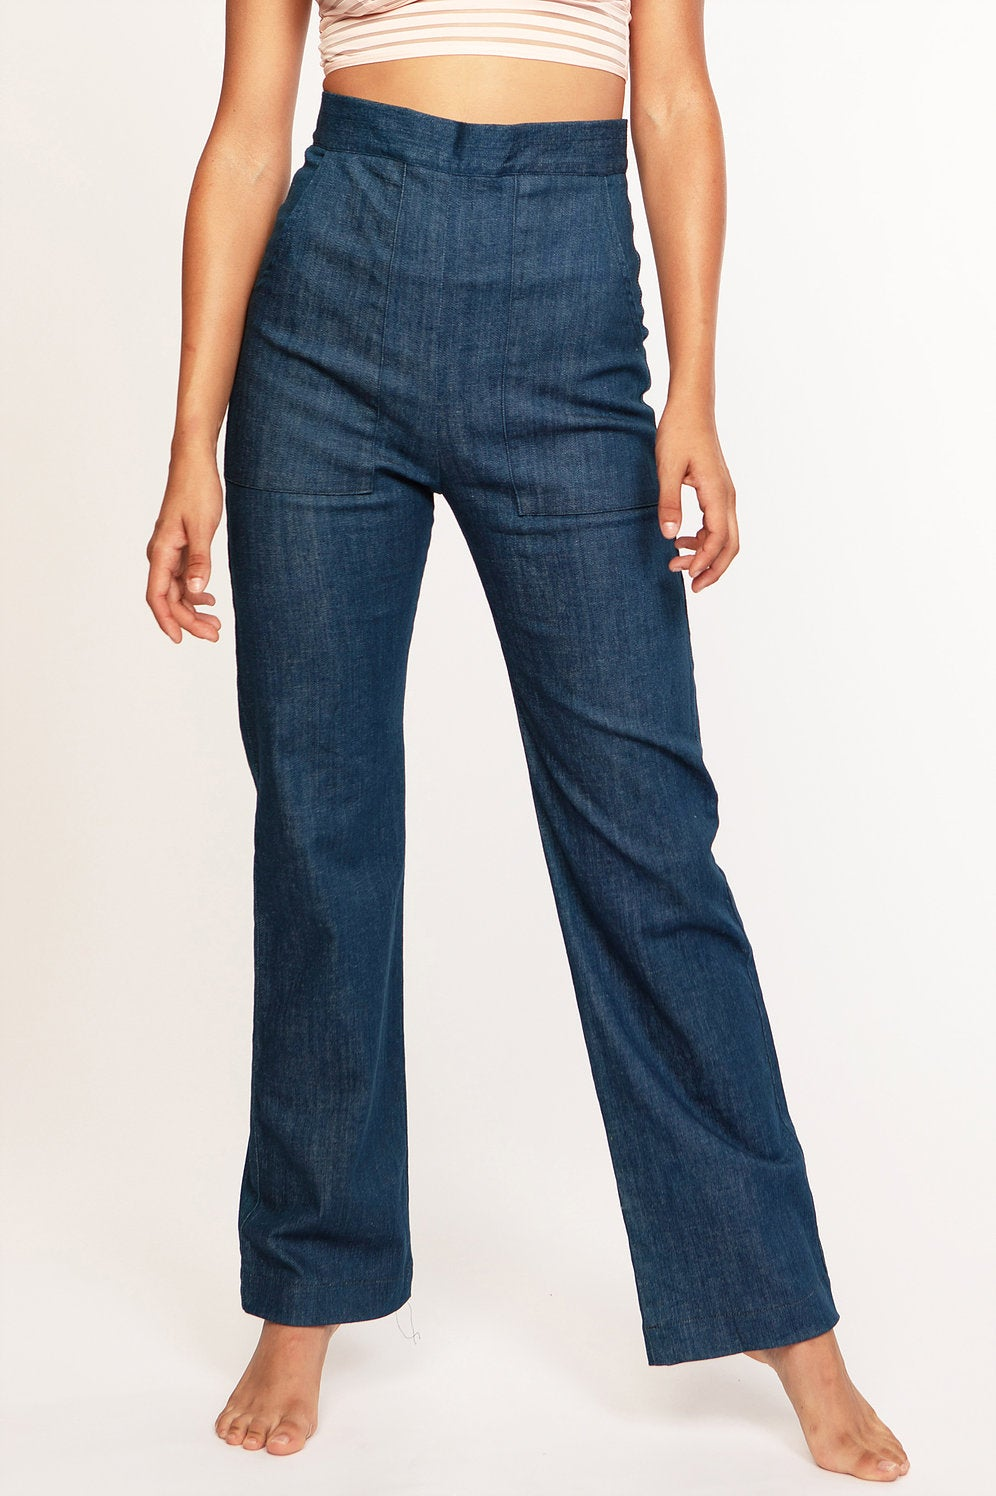 Image of Cameo High Waist Pant in Denim